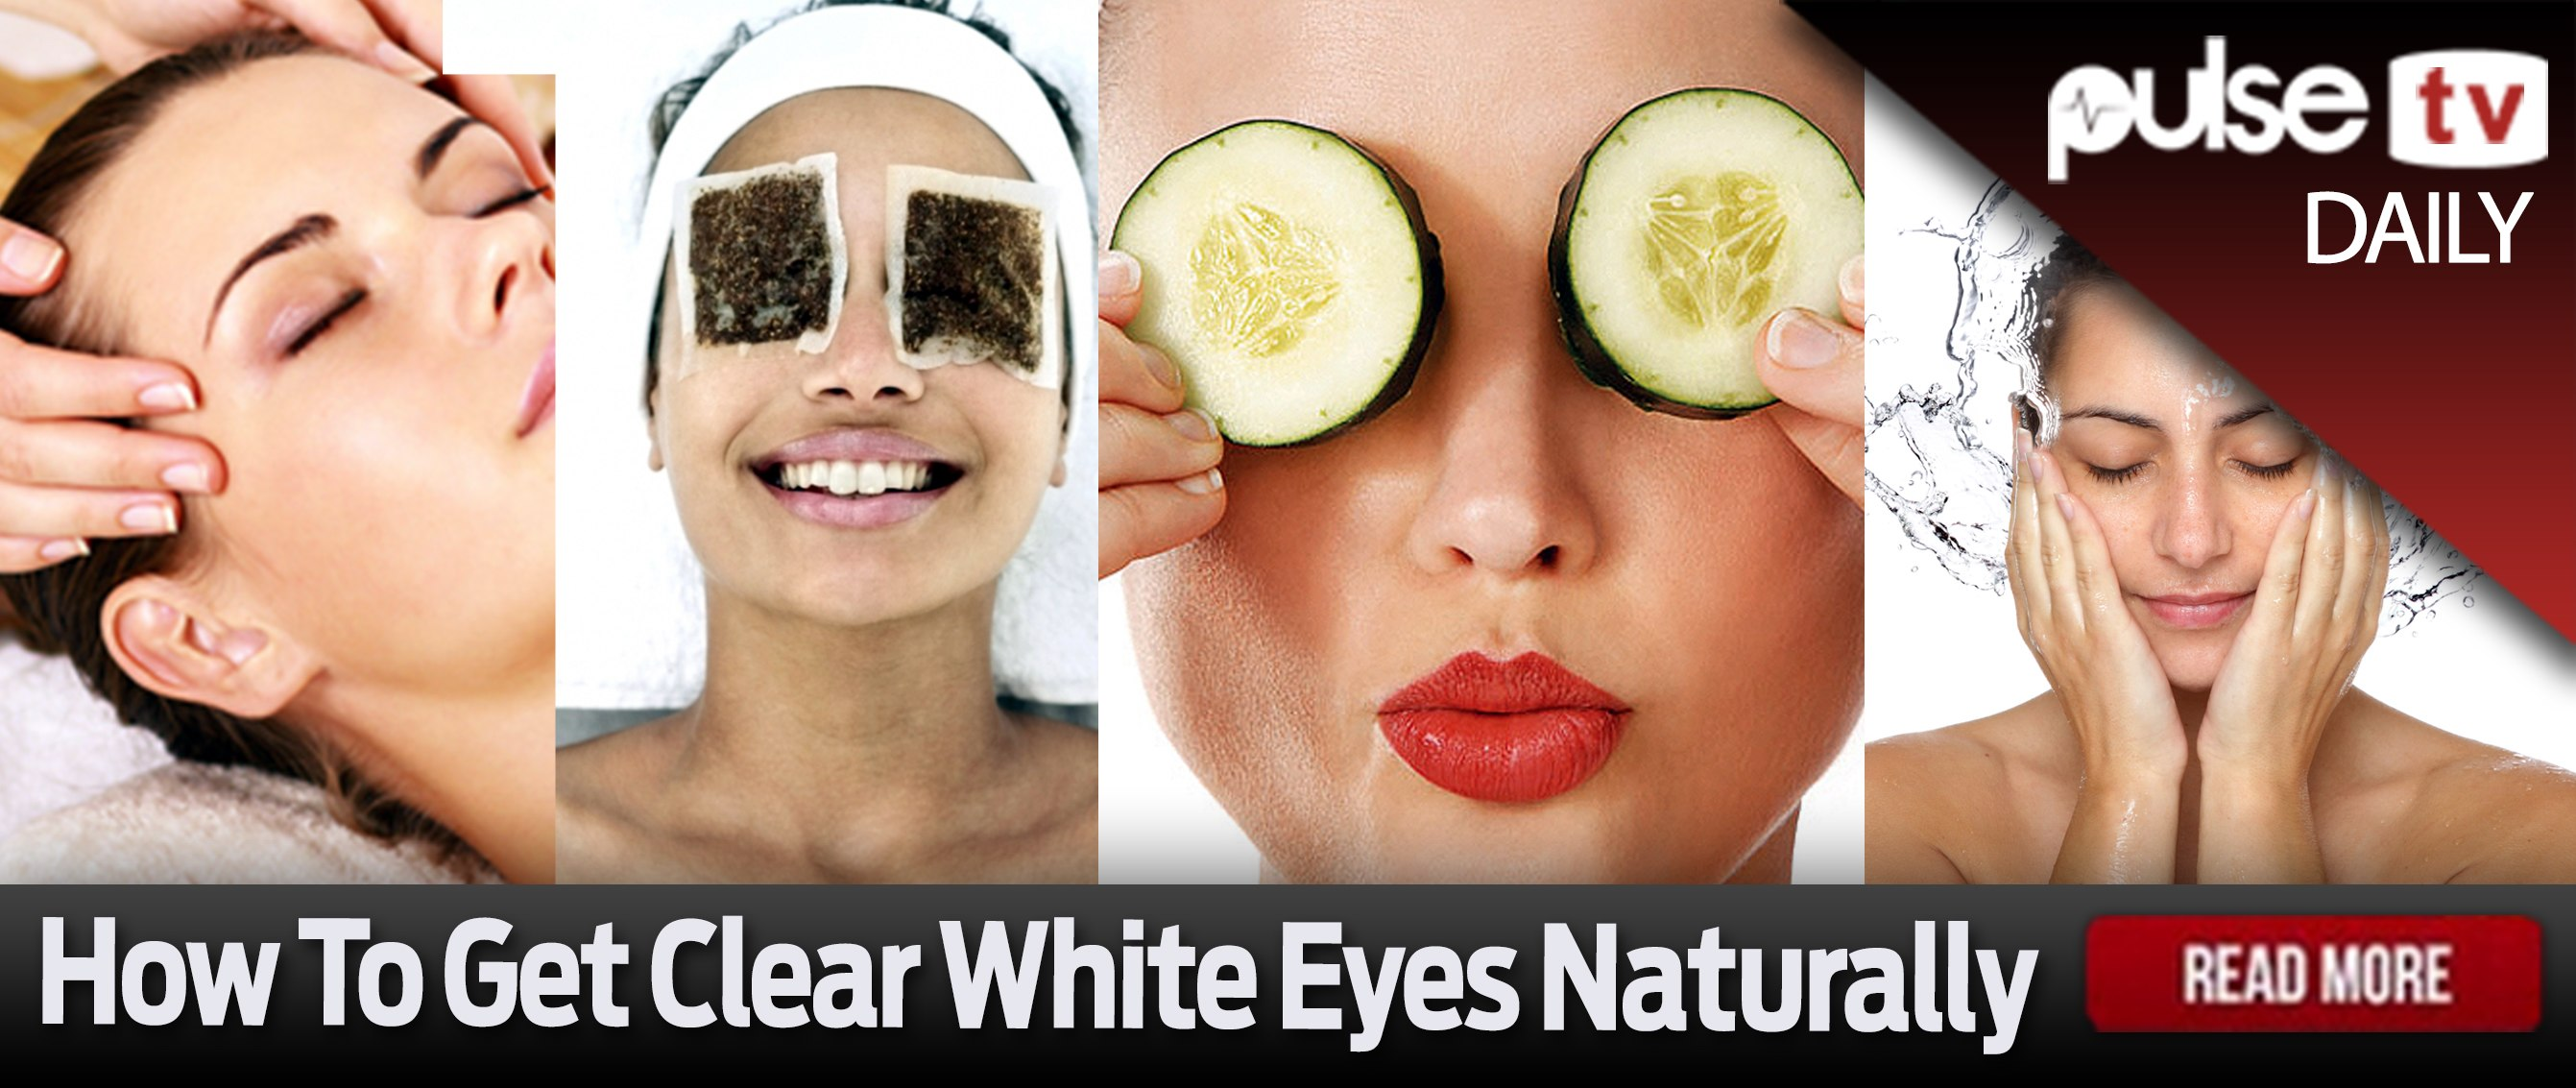 Pulse Daily How to get clear white eyes naturally - Pulse